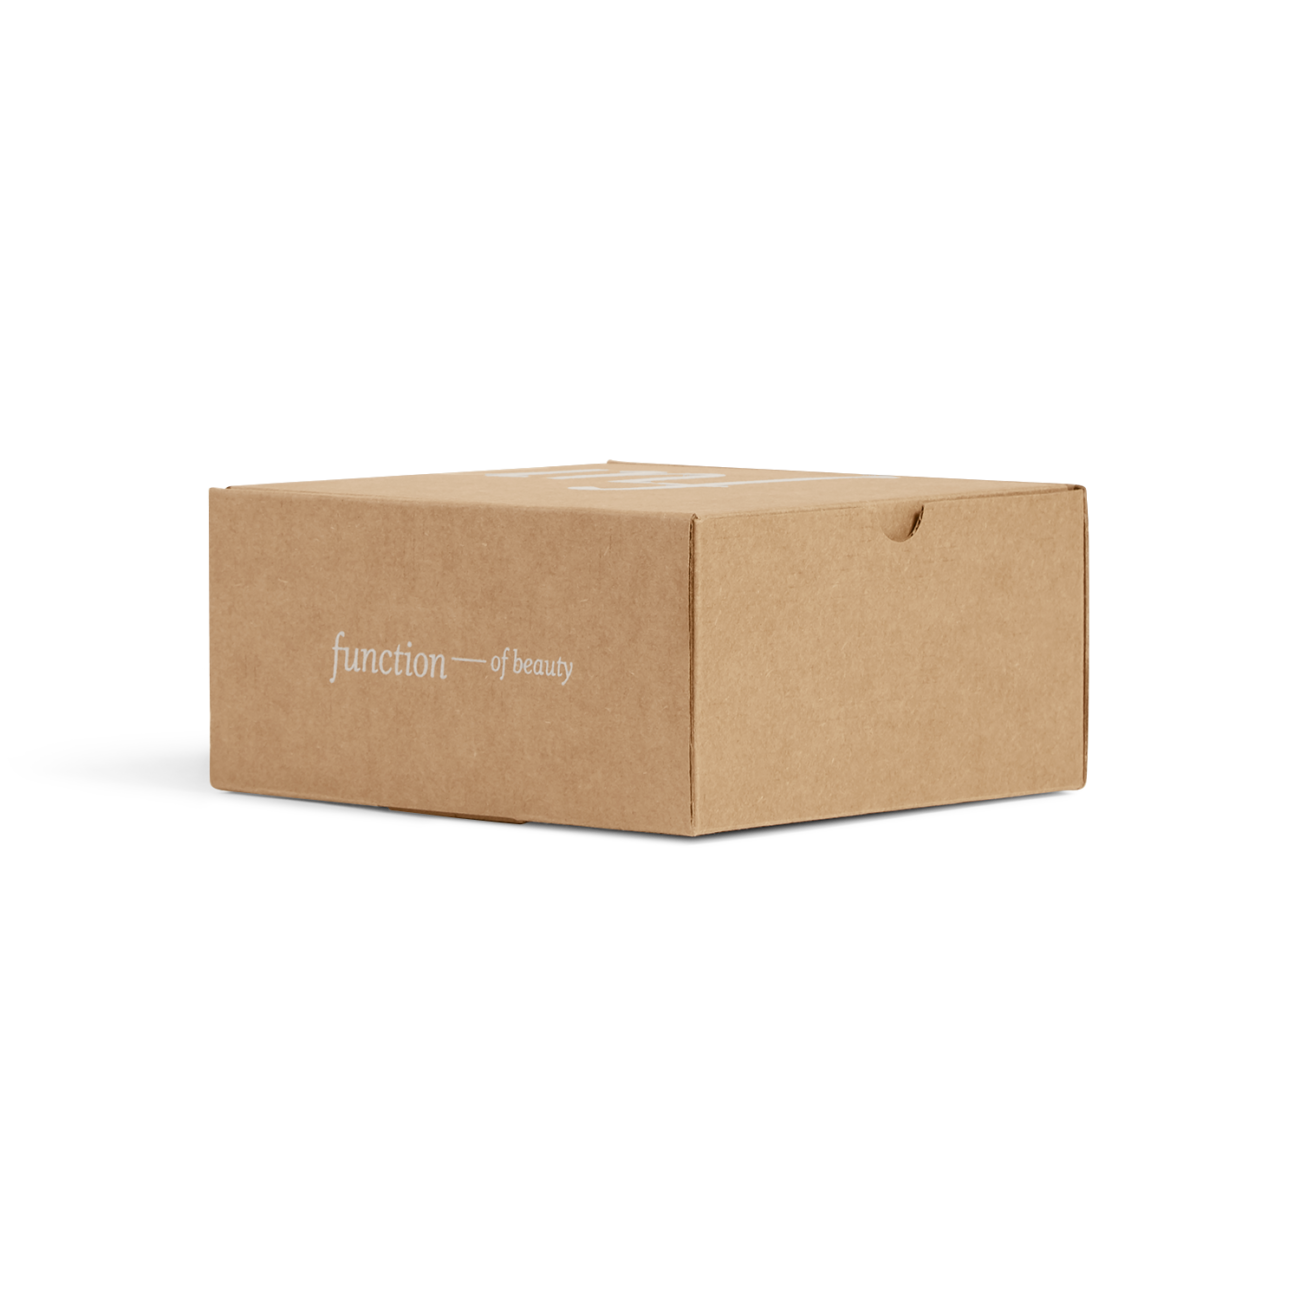 Custom roll end tuck top corrugated mailer box with roll end base, tuck top lid, thumb notch. Flexography on natural kraft liner.